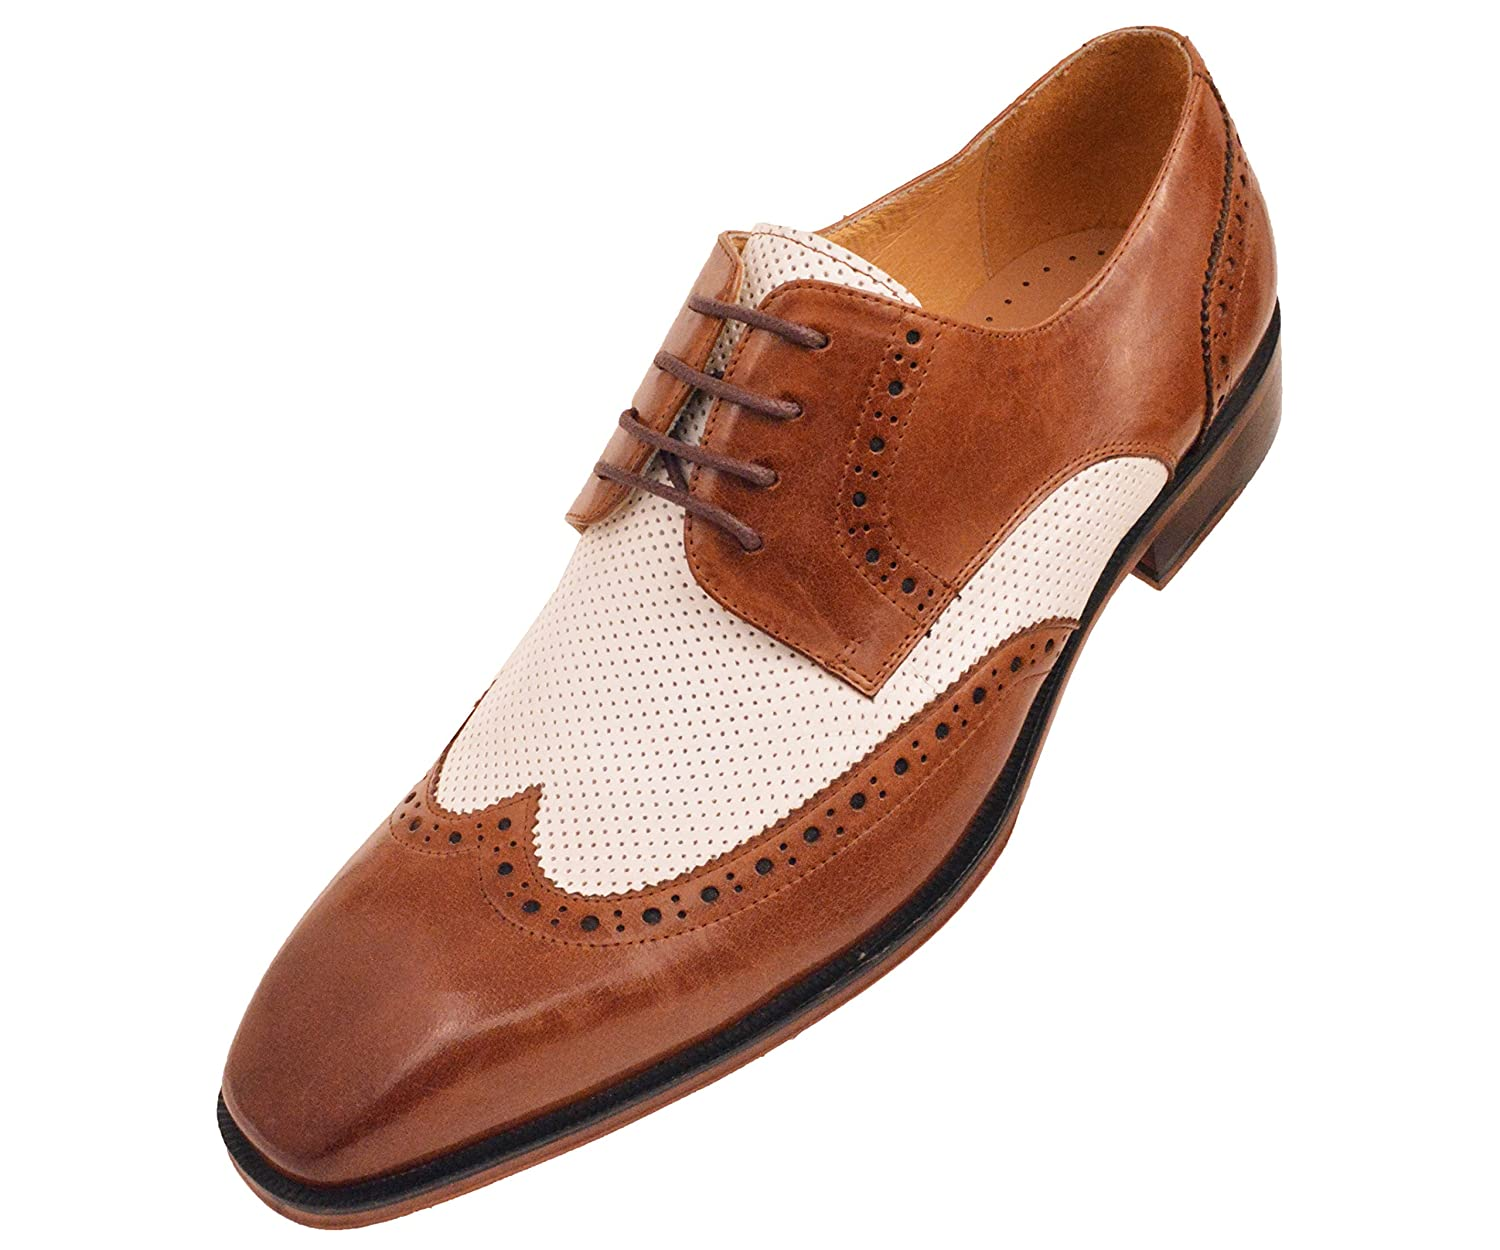 1950s Mens Shoes: Saddle Shoes, Boots, Greaser, Rockabilly Asher Green Mens Two Tone Cognac Brown / White Genuine Leather Wingtip Oxford Dress Shoe: AG3027-215 $79.99 AT vintagedancer.com